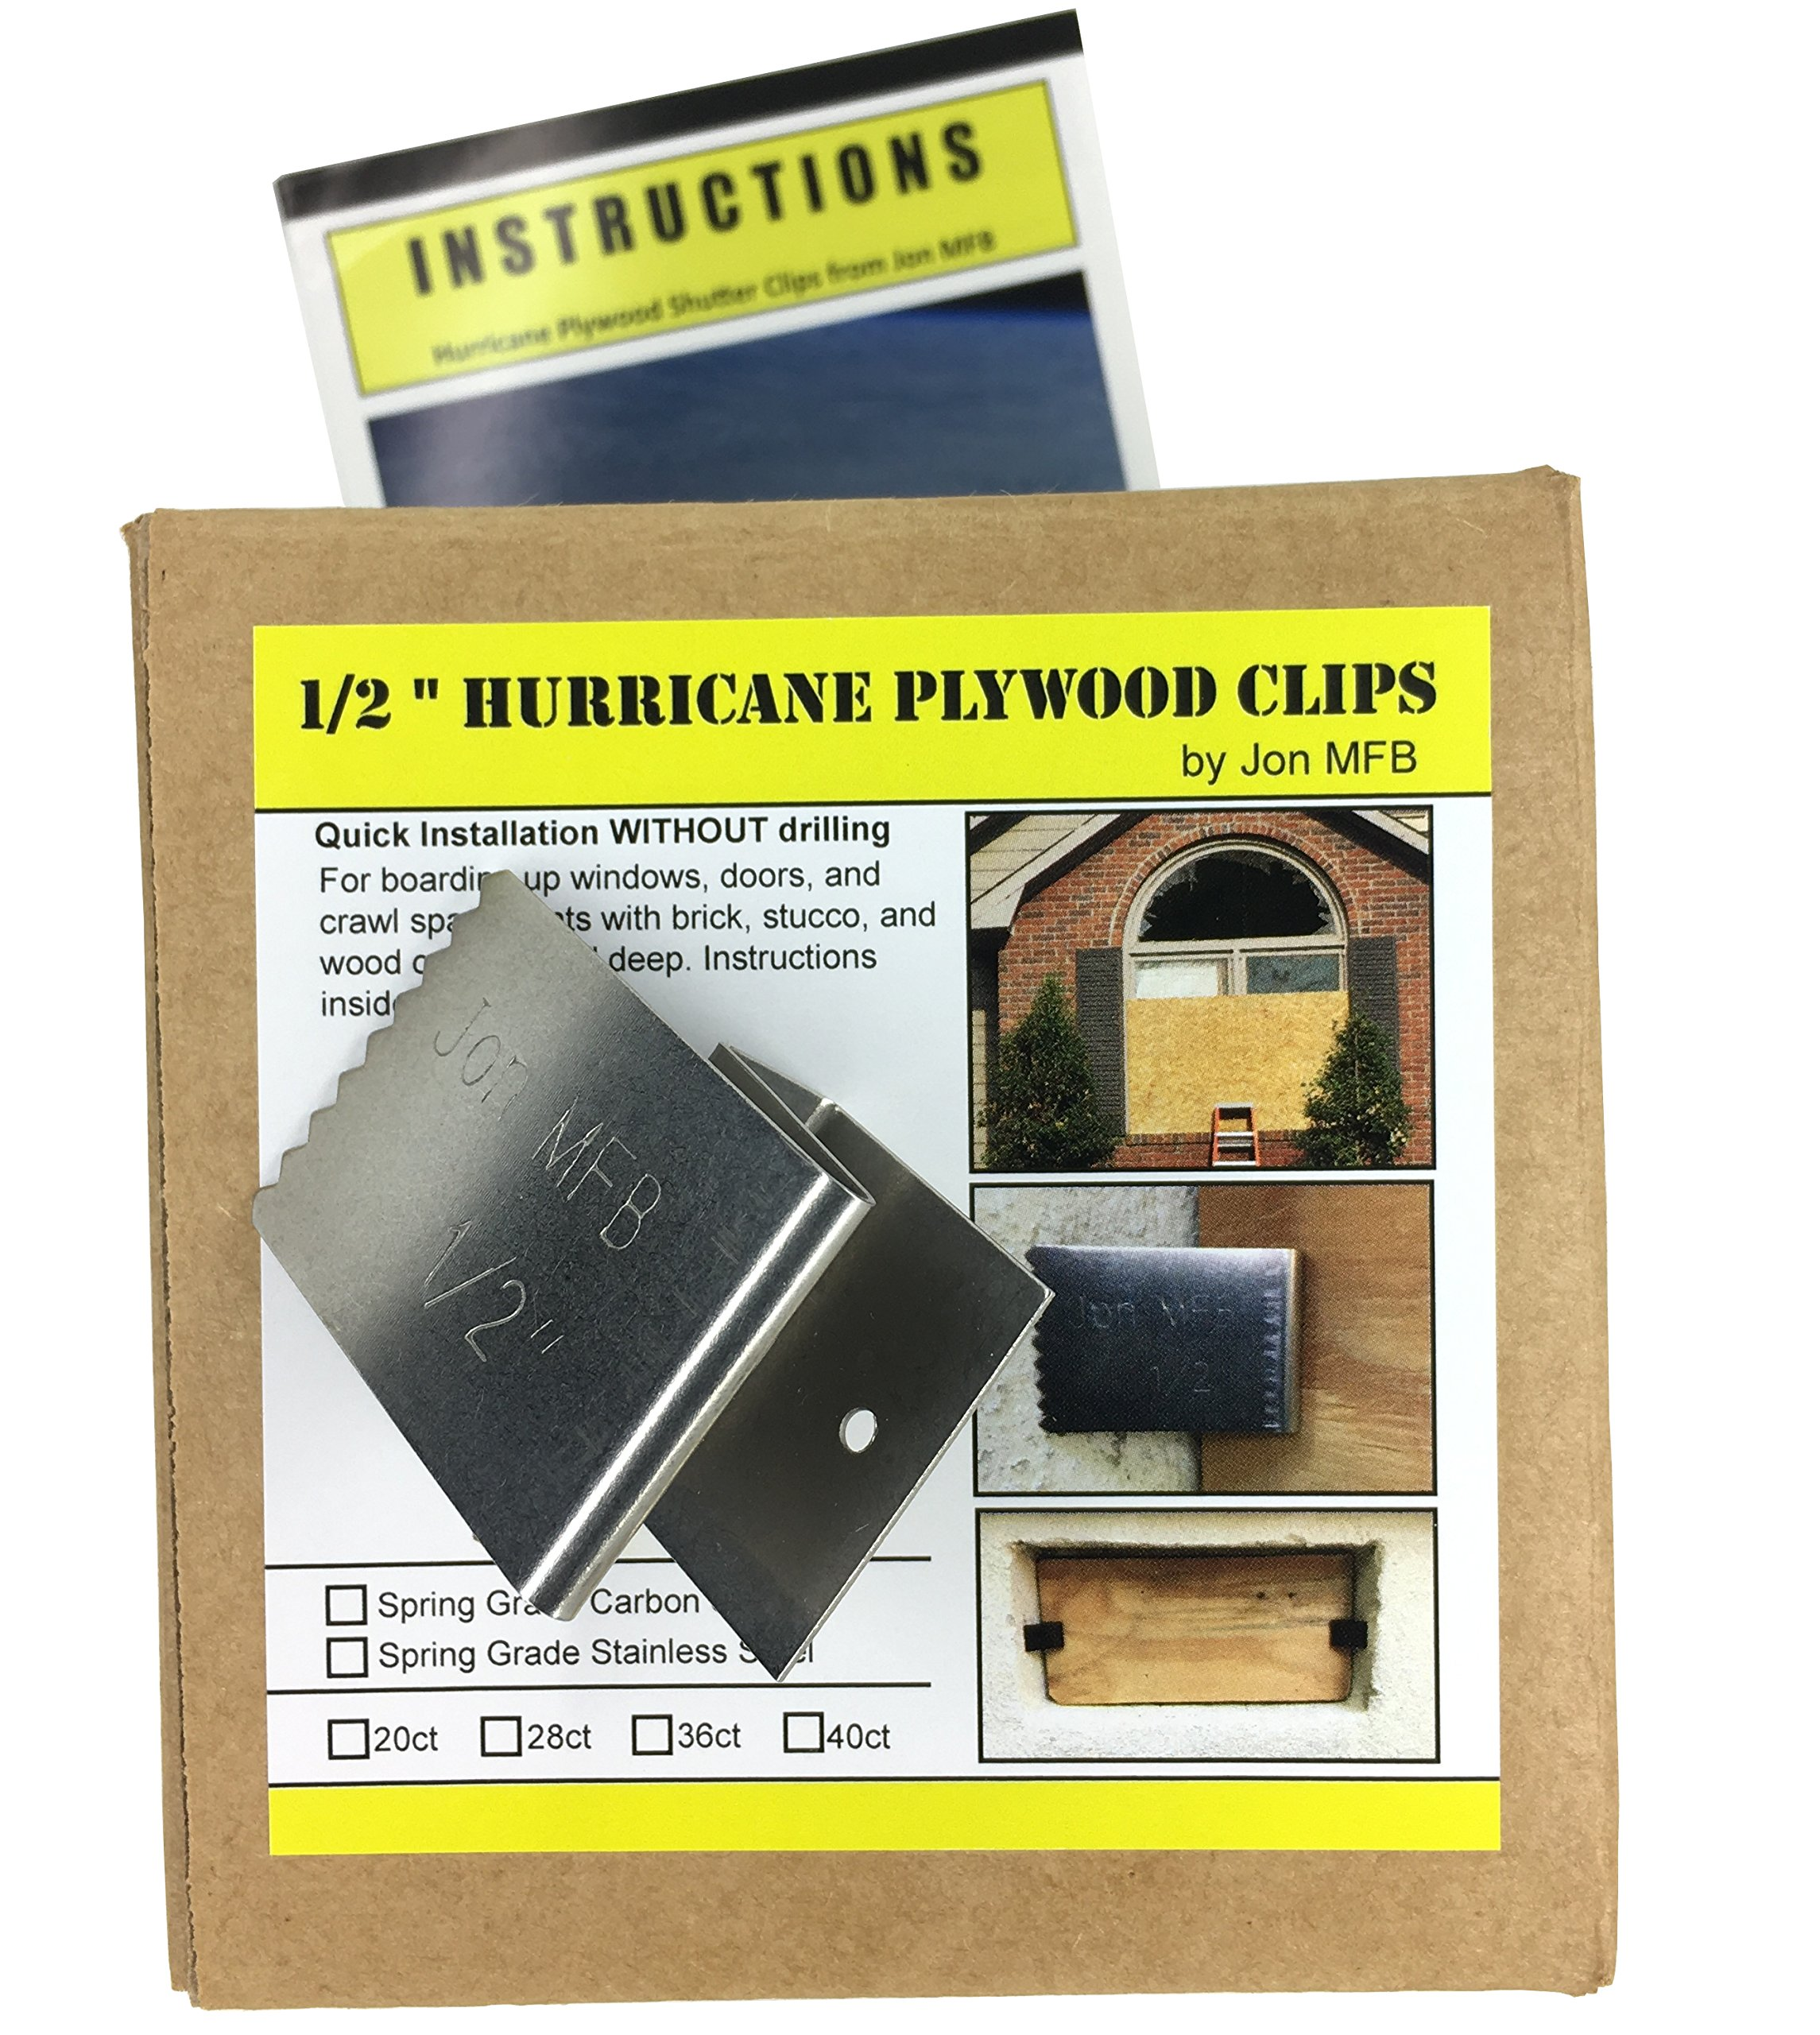 """1/2"""" Hurricane Plywood Clips to Shutter Windows, Spring Grade Stainless Steel - 20 pack"""